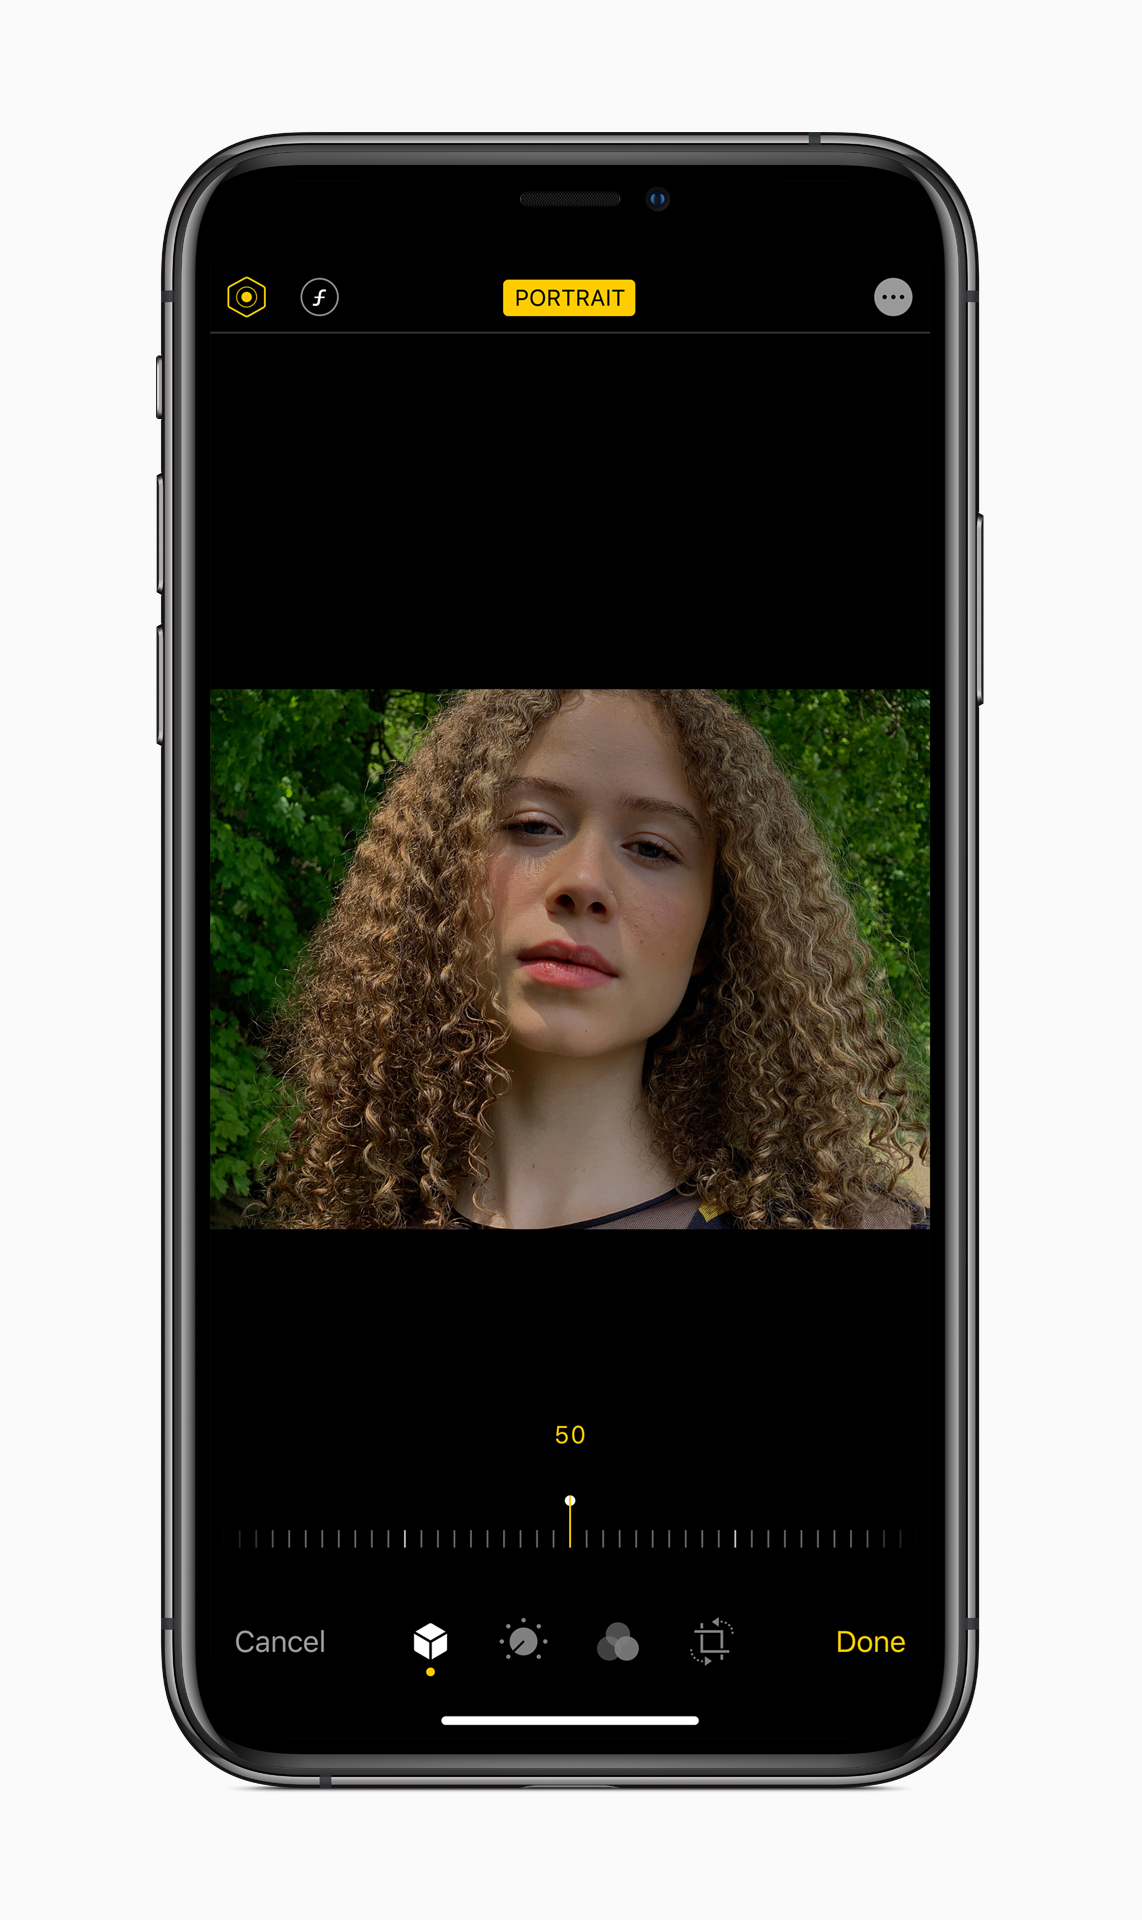 Apple-ios-13-portrait-screen-iphone-xs-06032019